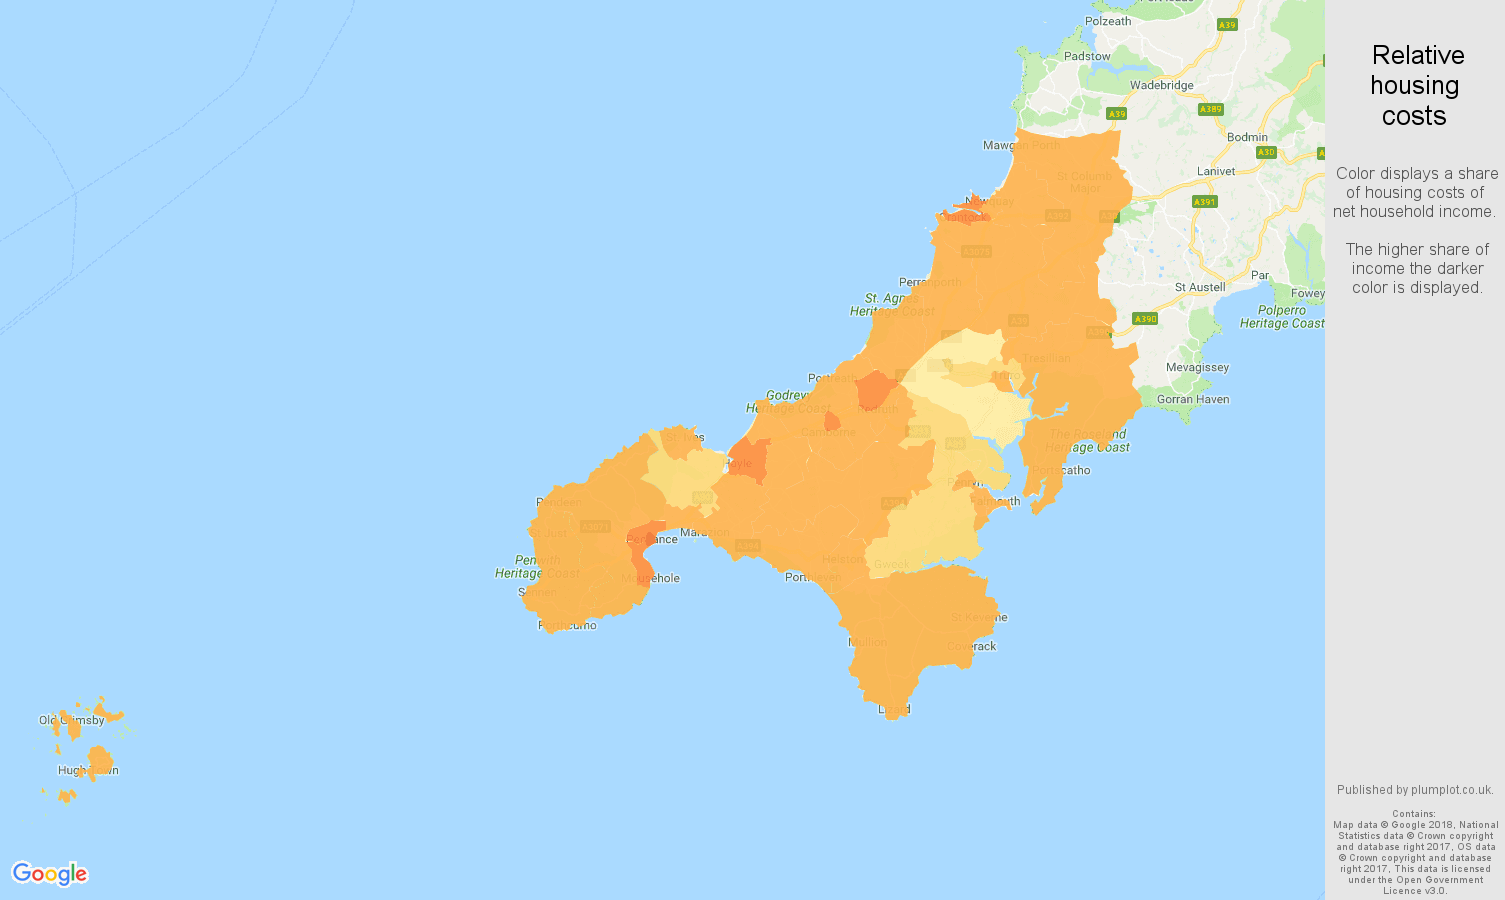 Truro relative housing costs map